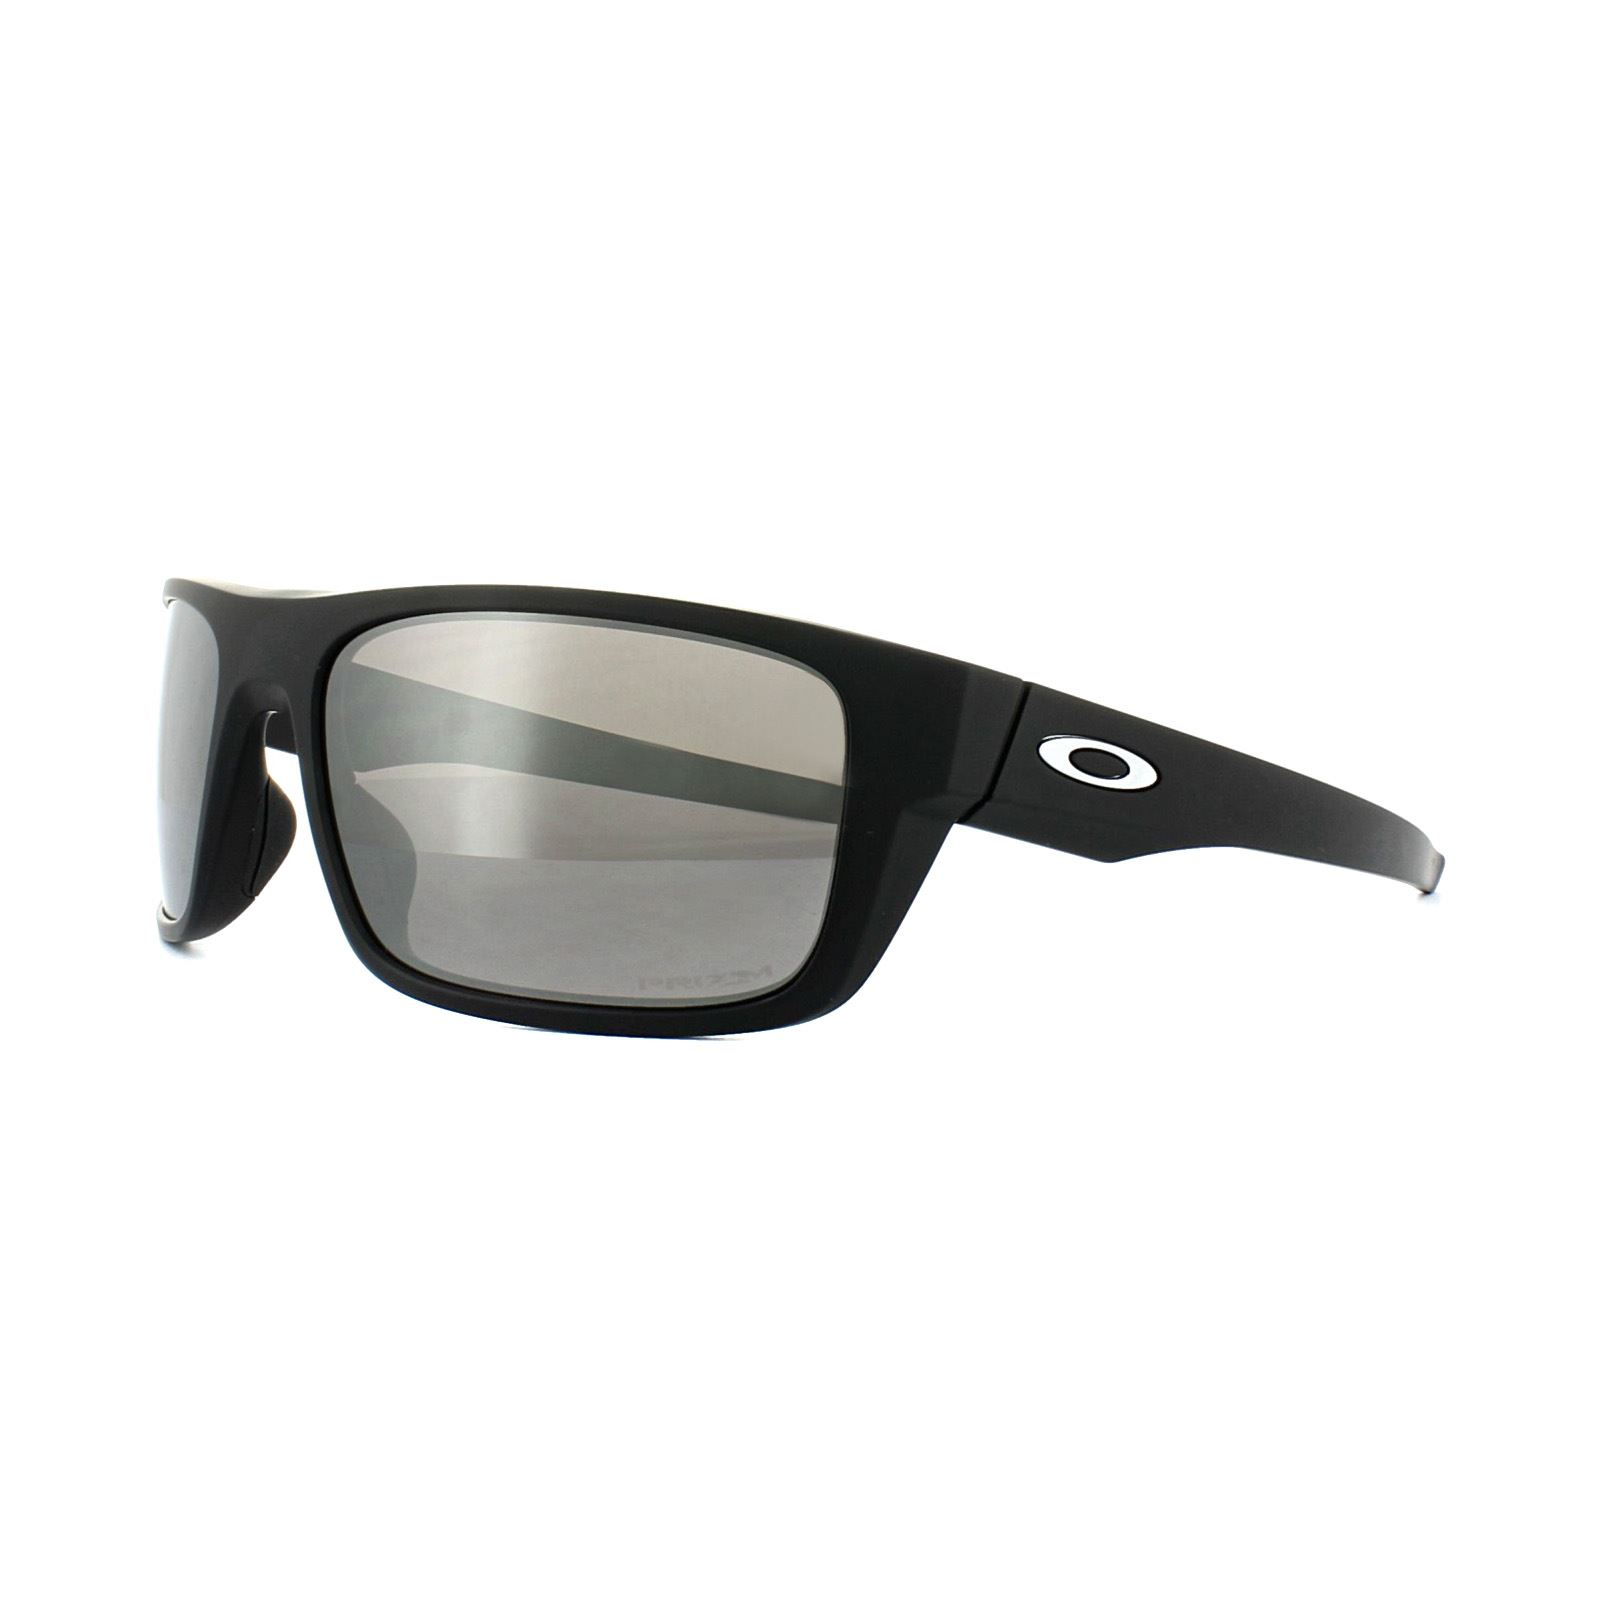 Details about Oakley Sunglasses Drop Point OO9367 08 Matt Black Prizm Black Polarized